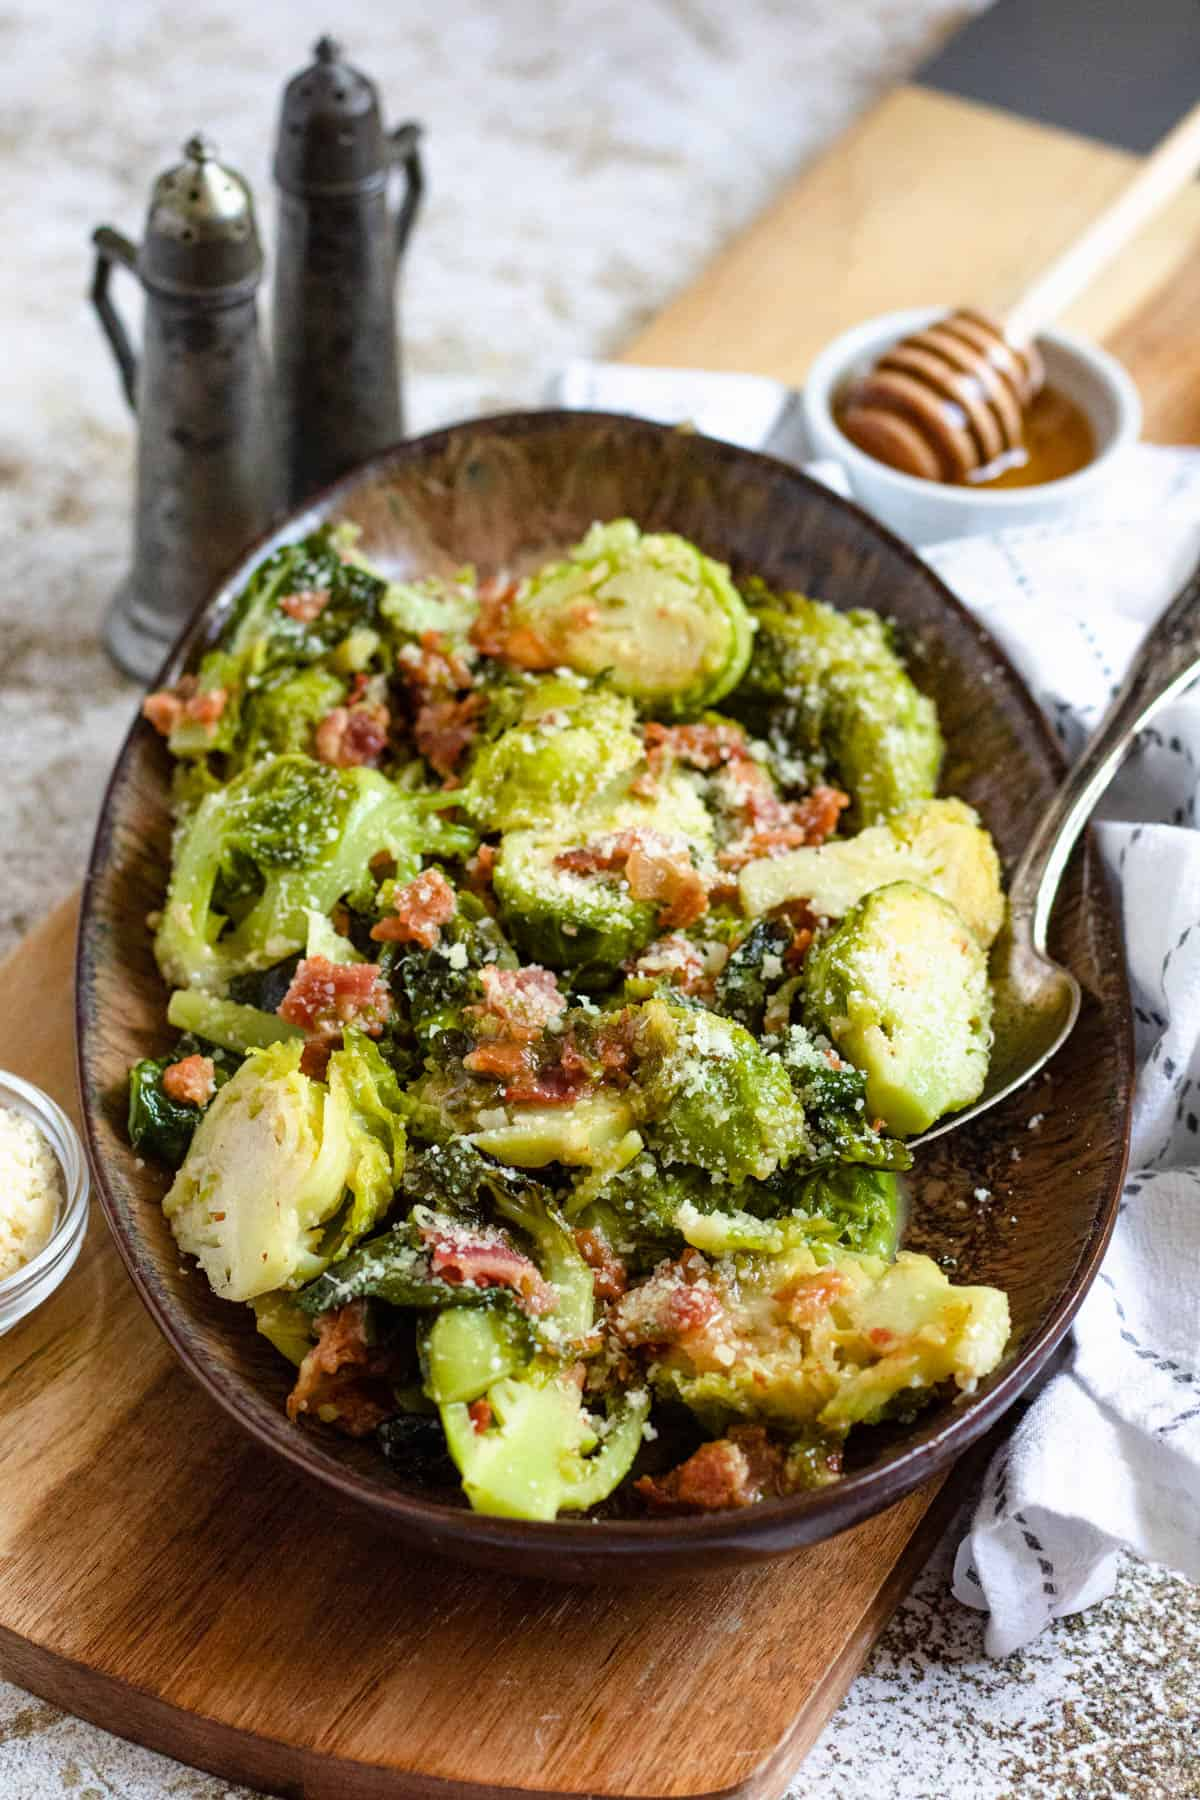 Brussels sprouts with bacon and parmesan cheese